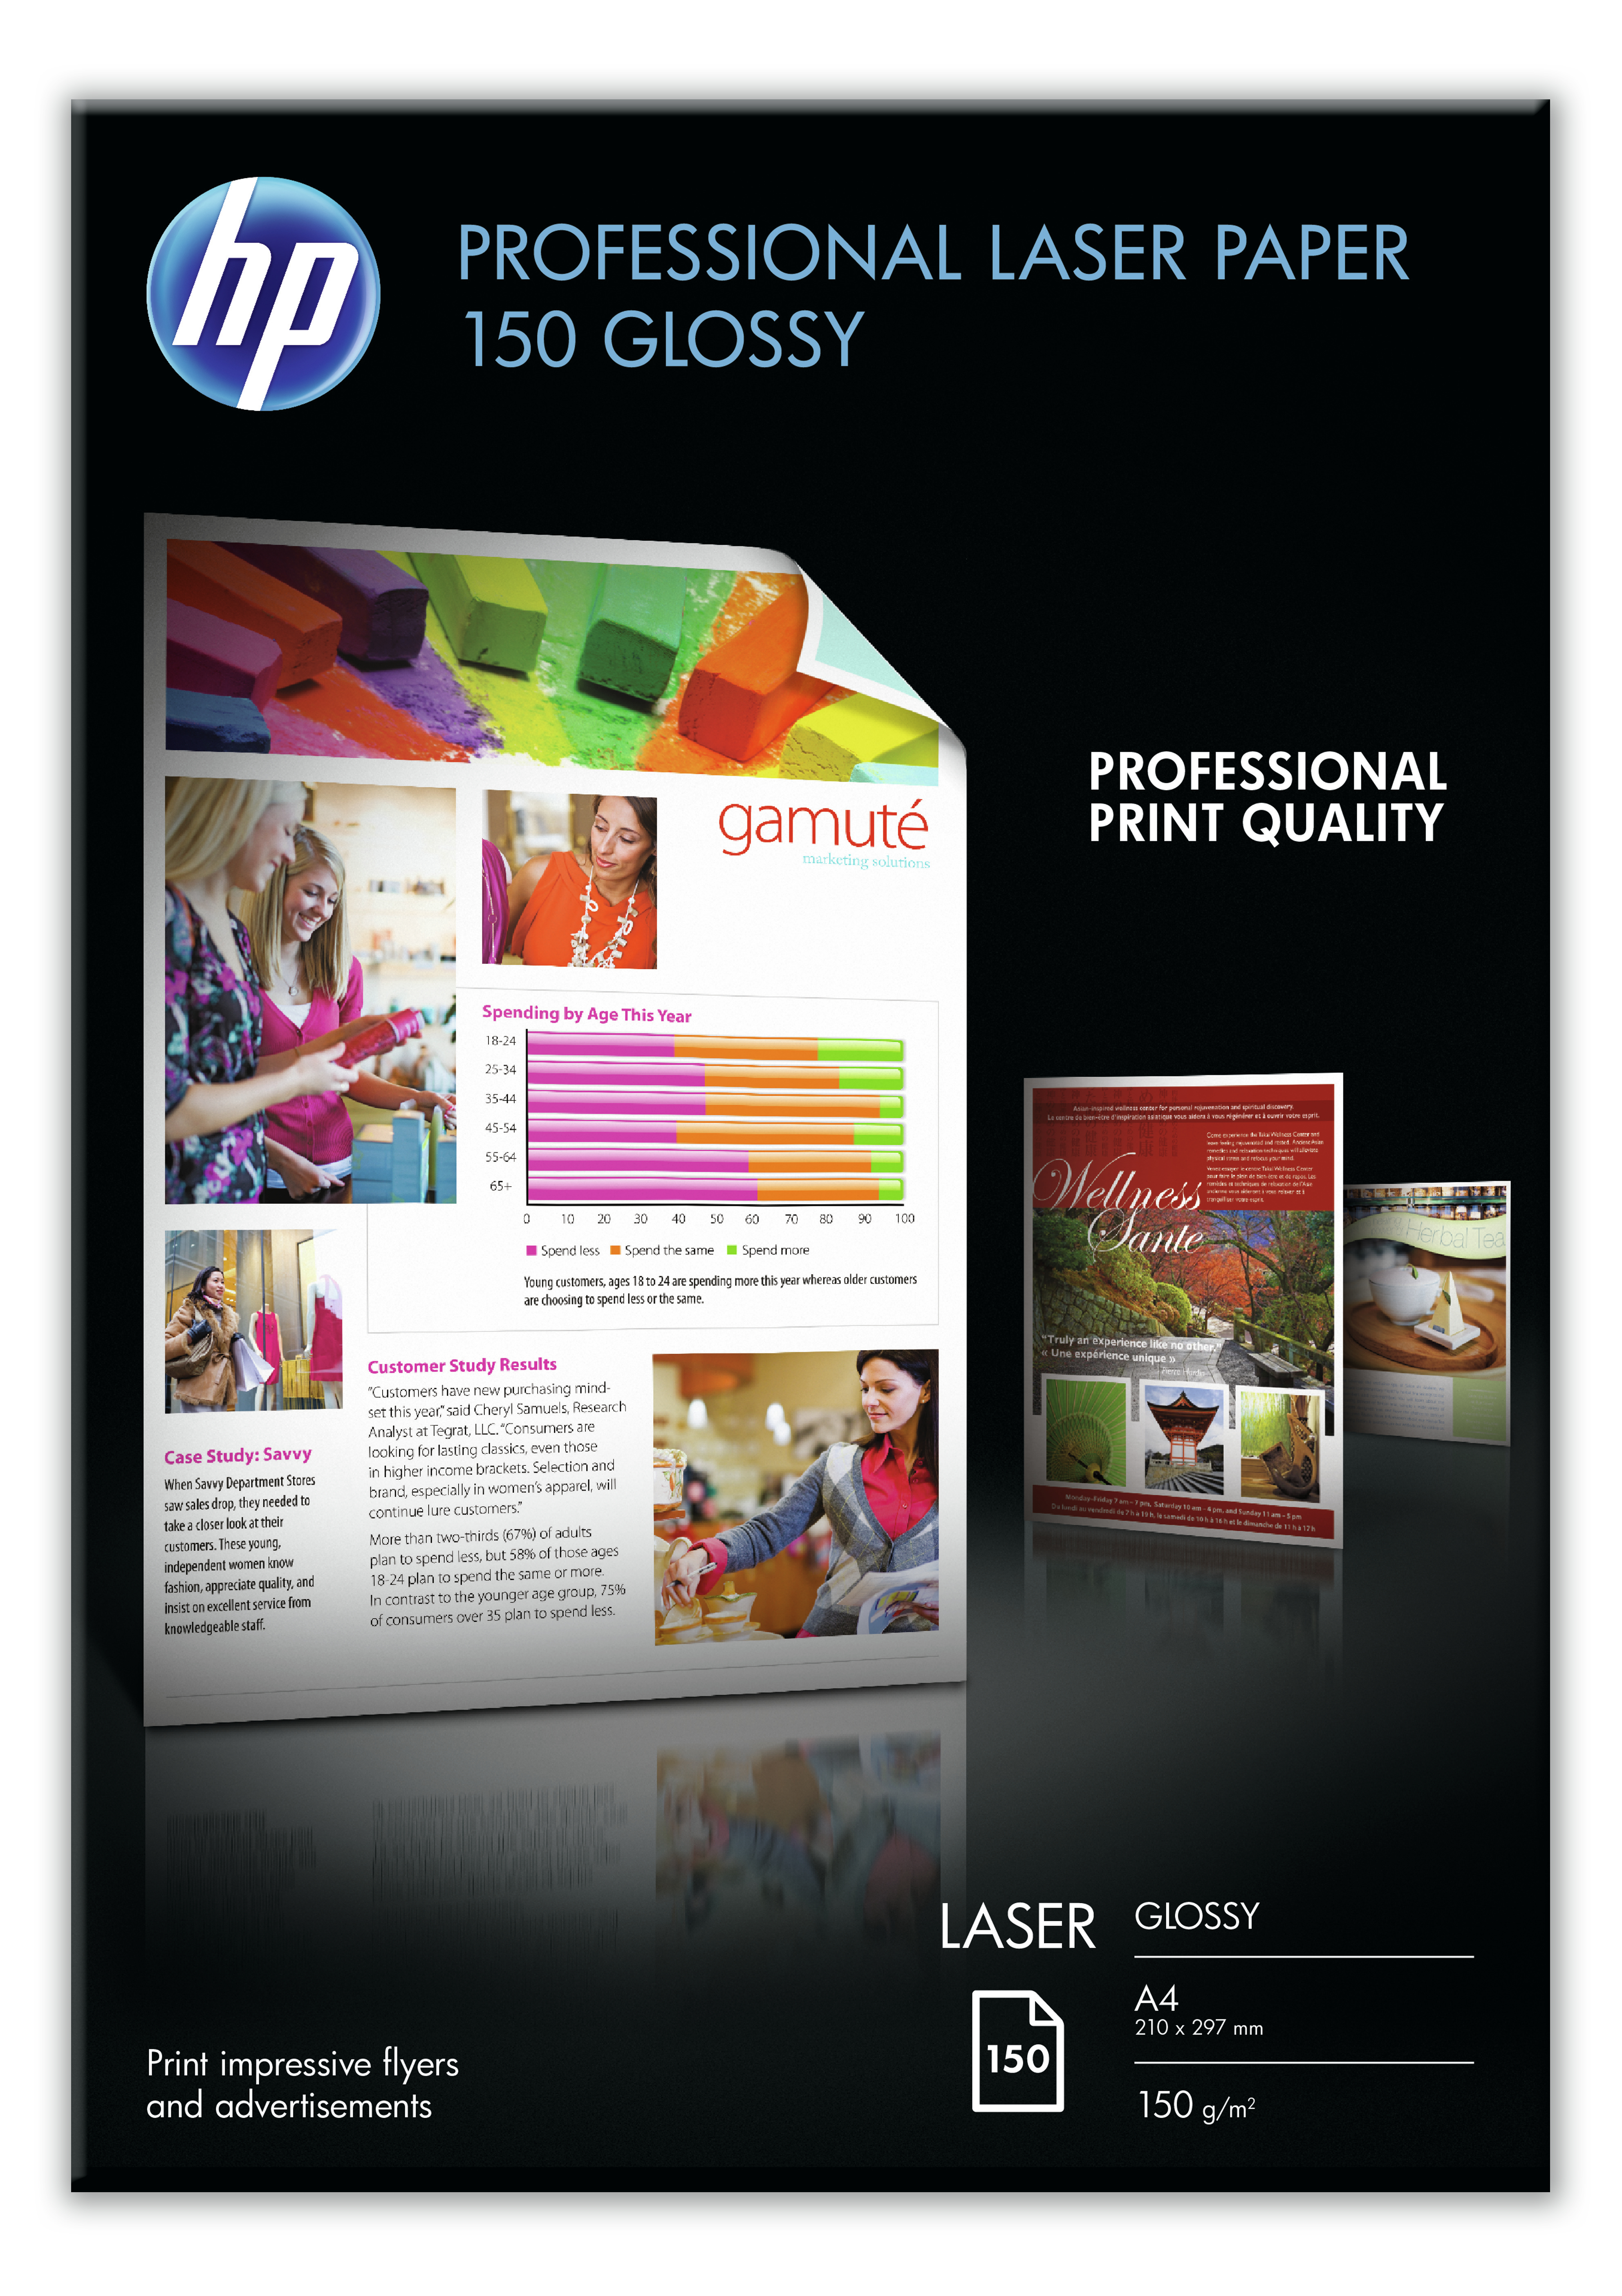 Hpcg965a       Hp Pro Glossy Laser Paper      150gsm                                                       - UF01